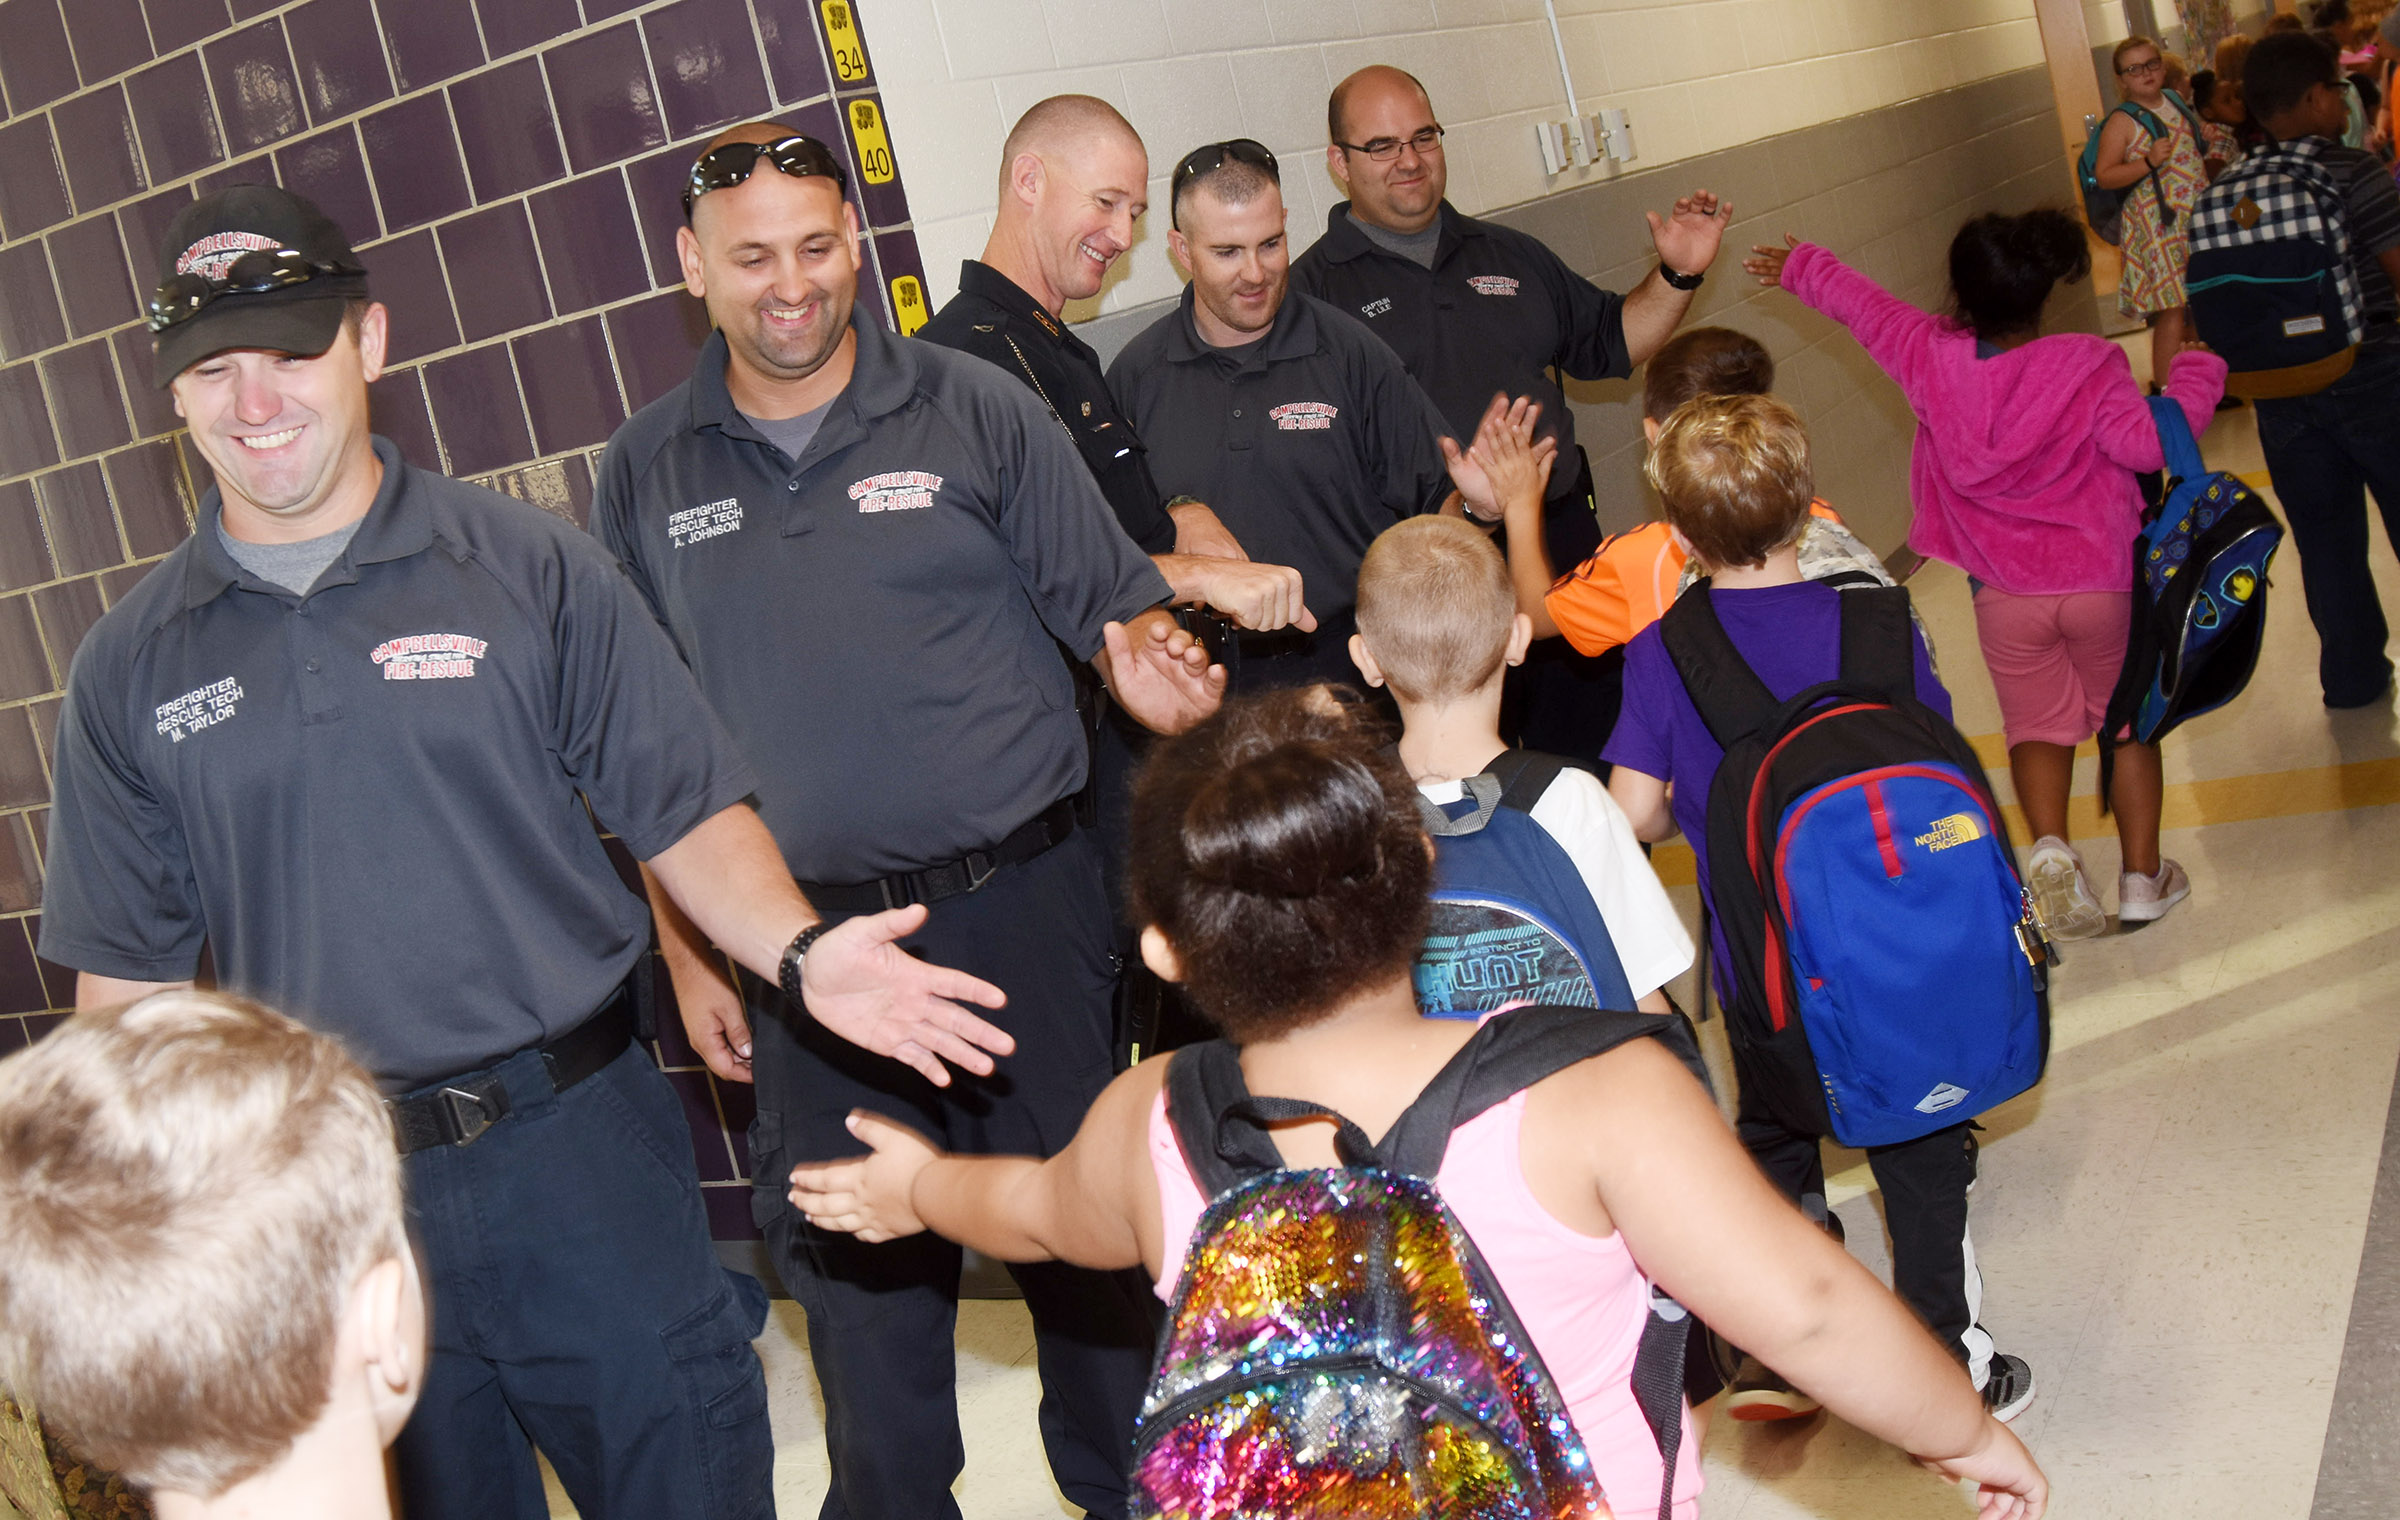 From left, Campbellsville Fire & Rescue personnel Matthew Taylor and Alex Johnson, CIS School Resource Officer Charlie Houk and Fire & Rescue personnel Cole Warf and Brent Lile high five and fist bump CES students.